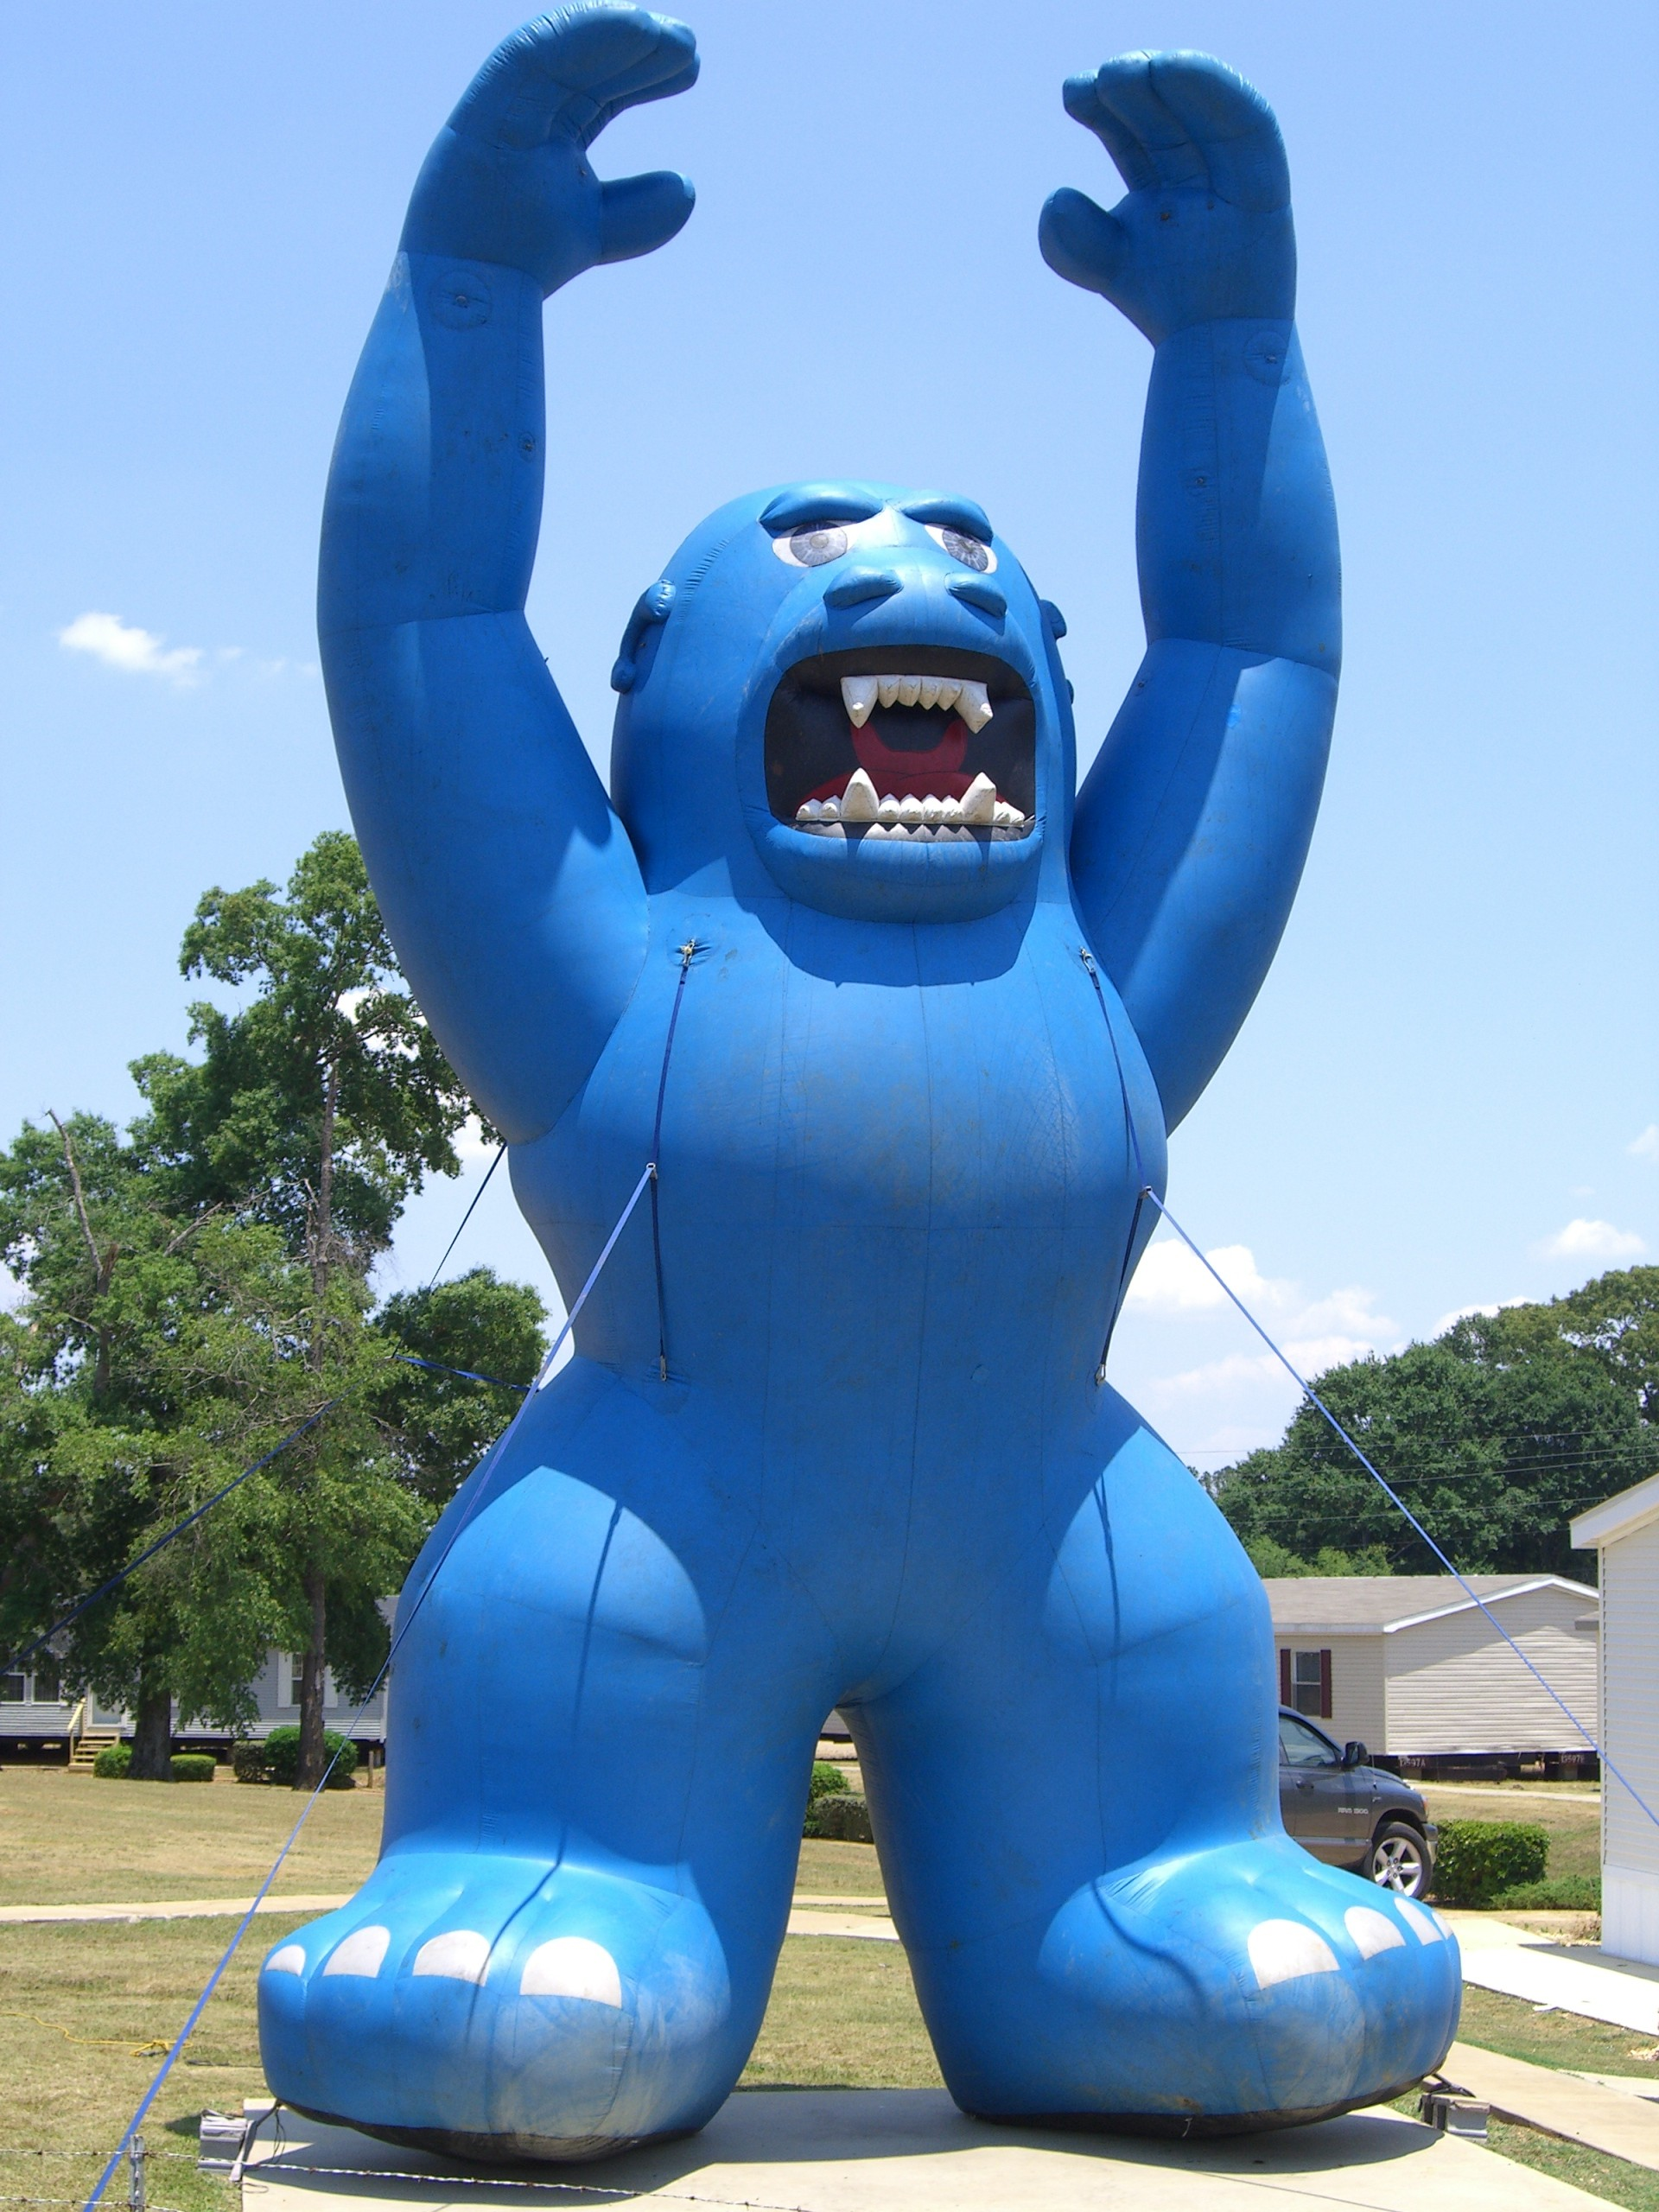 blue inflatable gorilla used at businesses for marketing